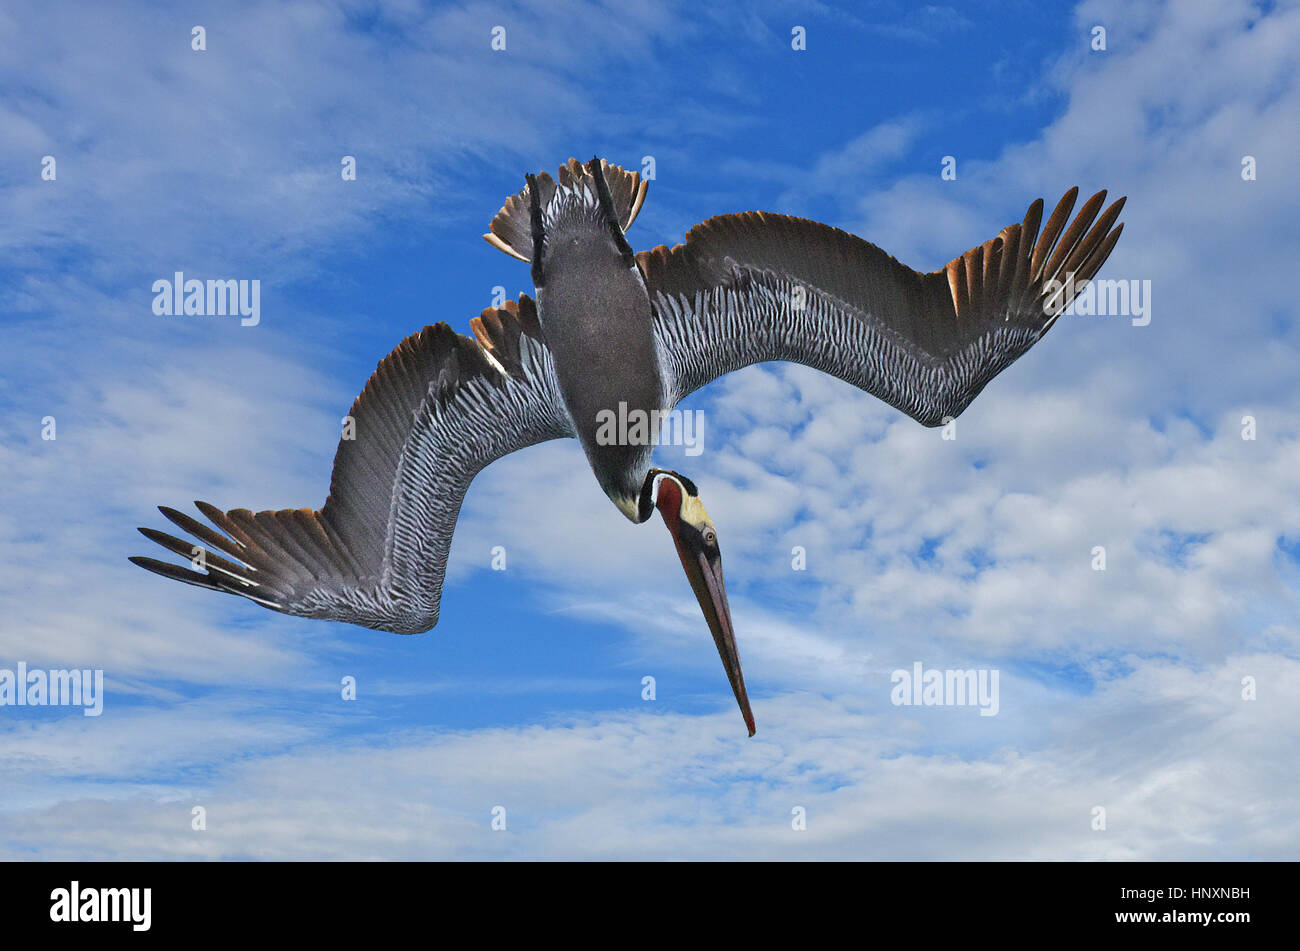 Plunge Diving Brown Pelican (Pelecanus occidentalis) against blue sky with clouds. - Stock Image